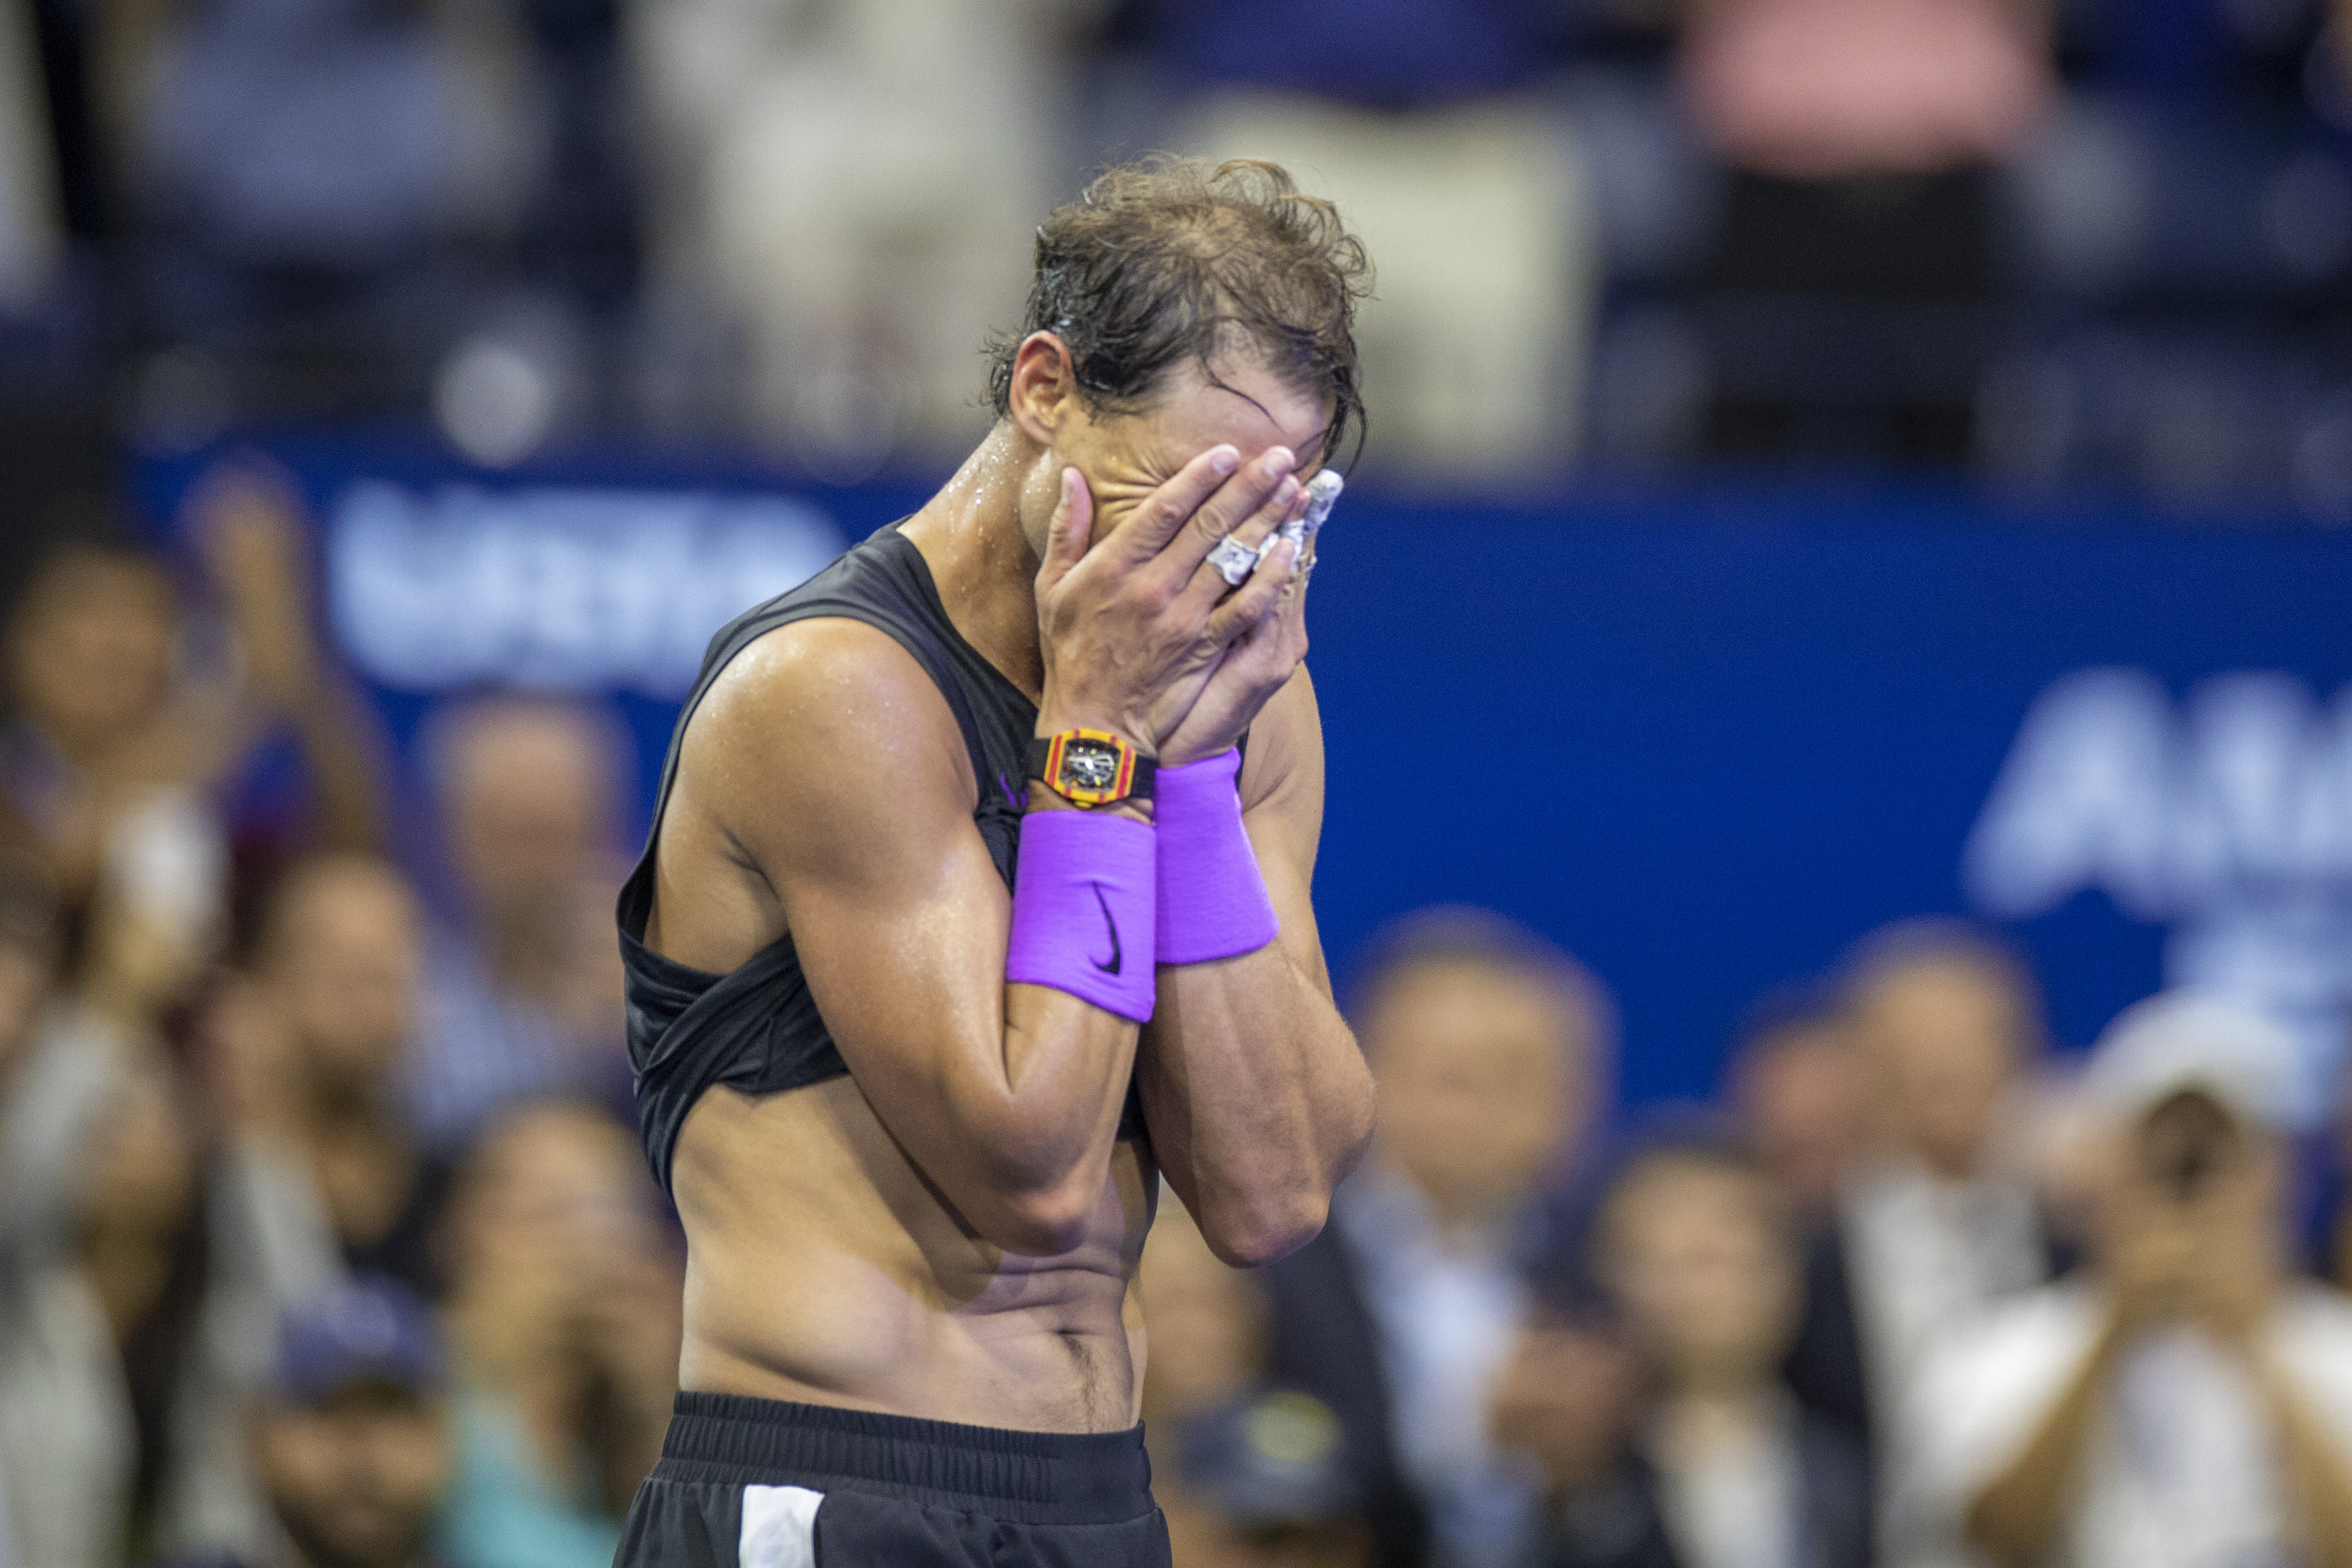 An exhausted Rafael Nadal wins the US Open (Photo by Tim Clayton/Corbis via Getty Images)